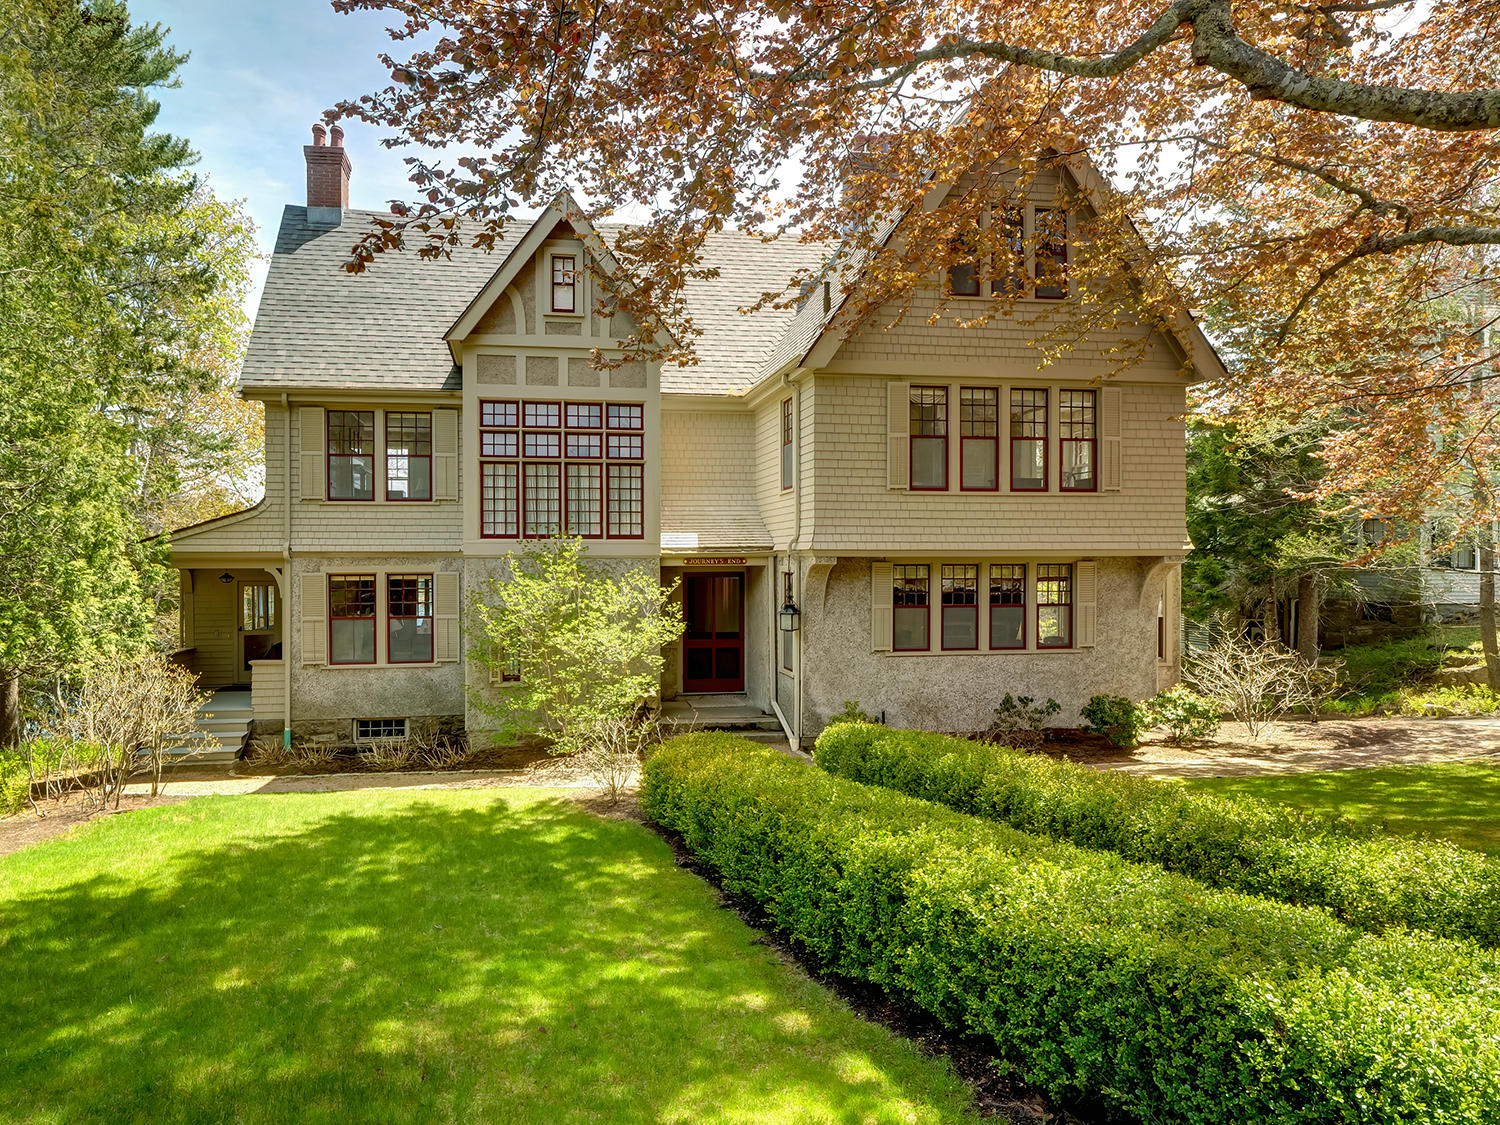 5-2-33-Front with lawn (33)